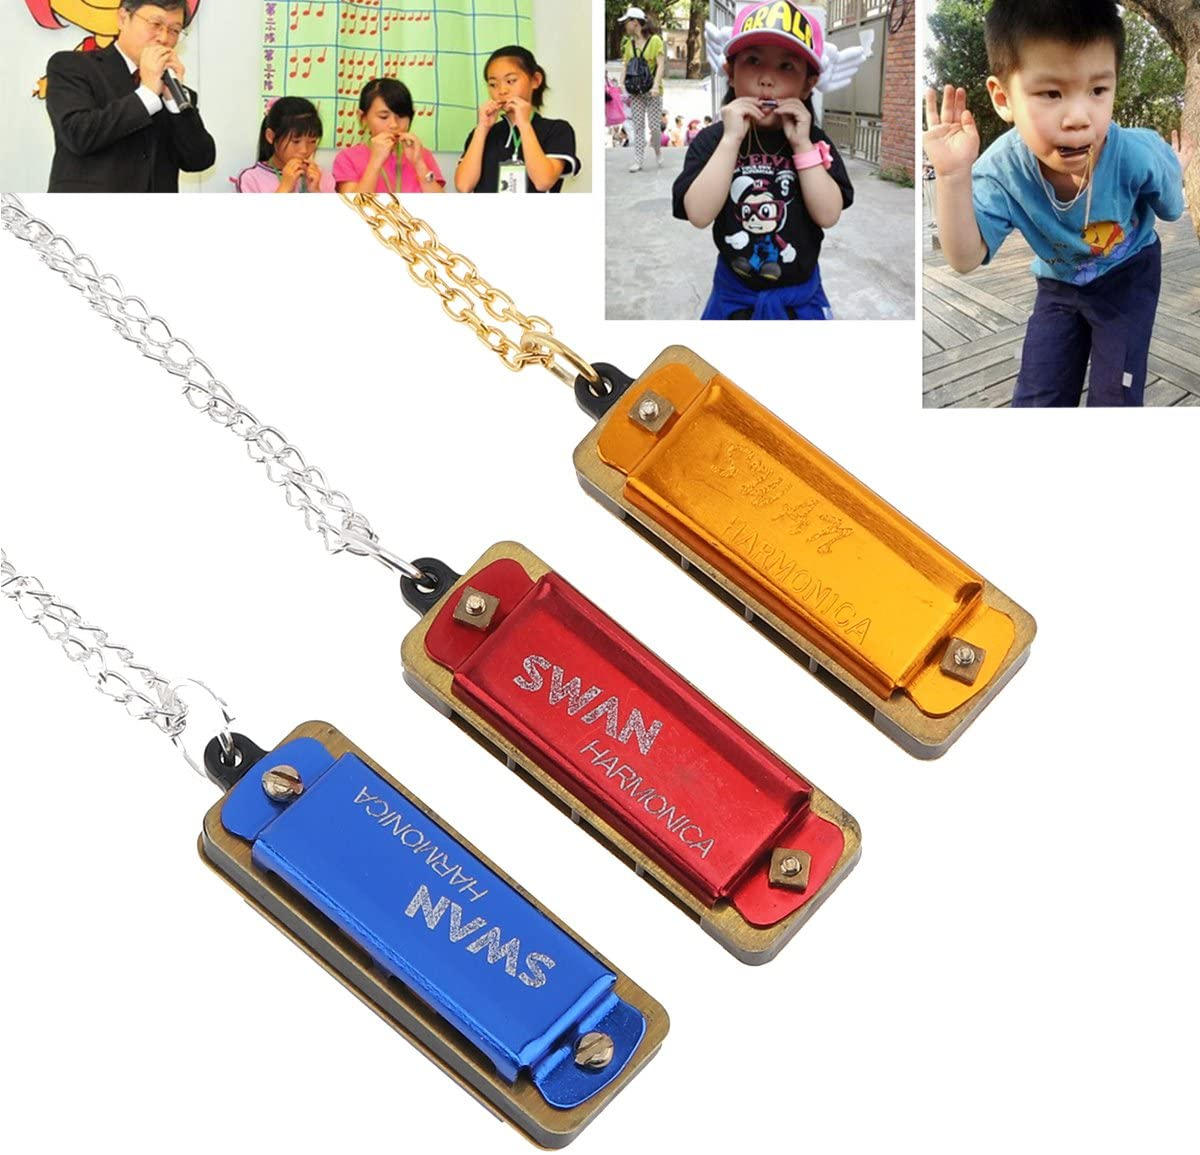 【The Best Deal】OriGlam 3pcs Mini Swan Harmonica Key of C, 4 Holes 8 Tones Harmonica, Metal Chain for Children, Kids, Beginners for Parties, Holidays As Gifts